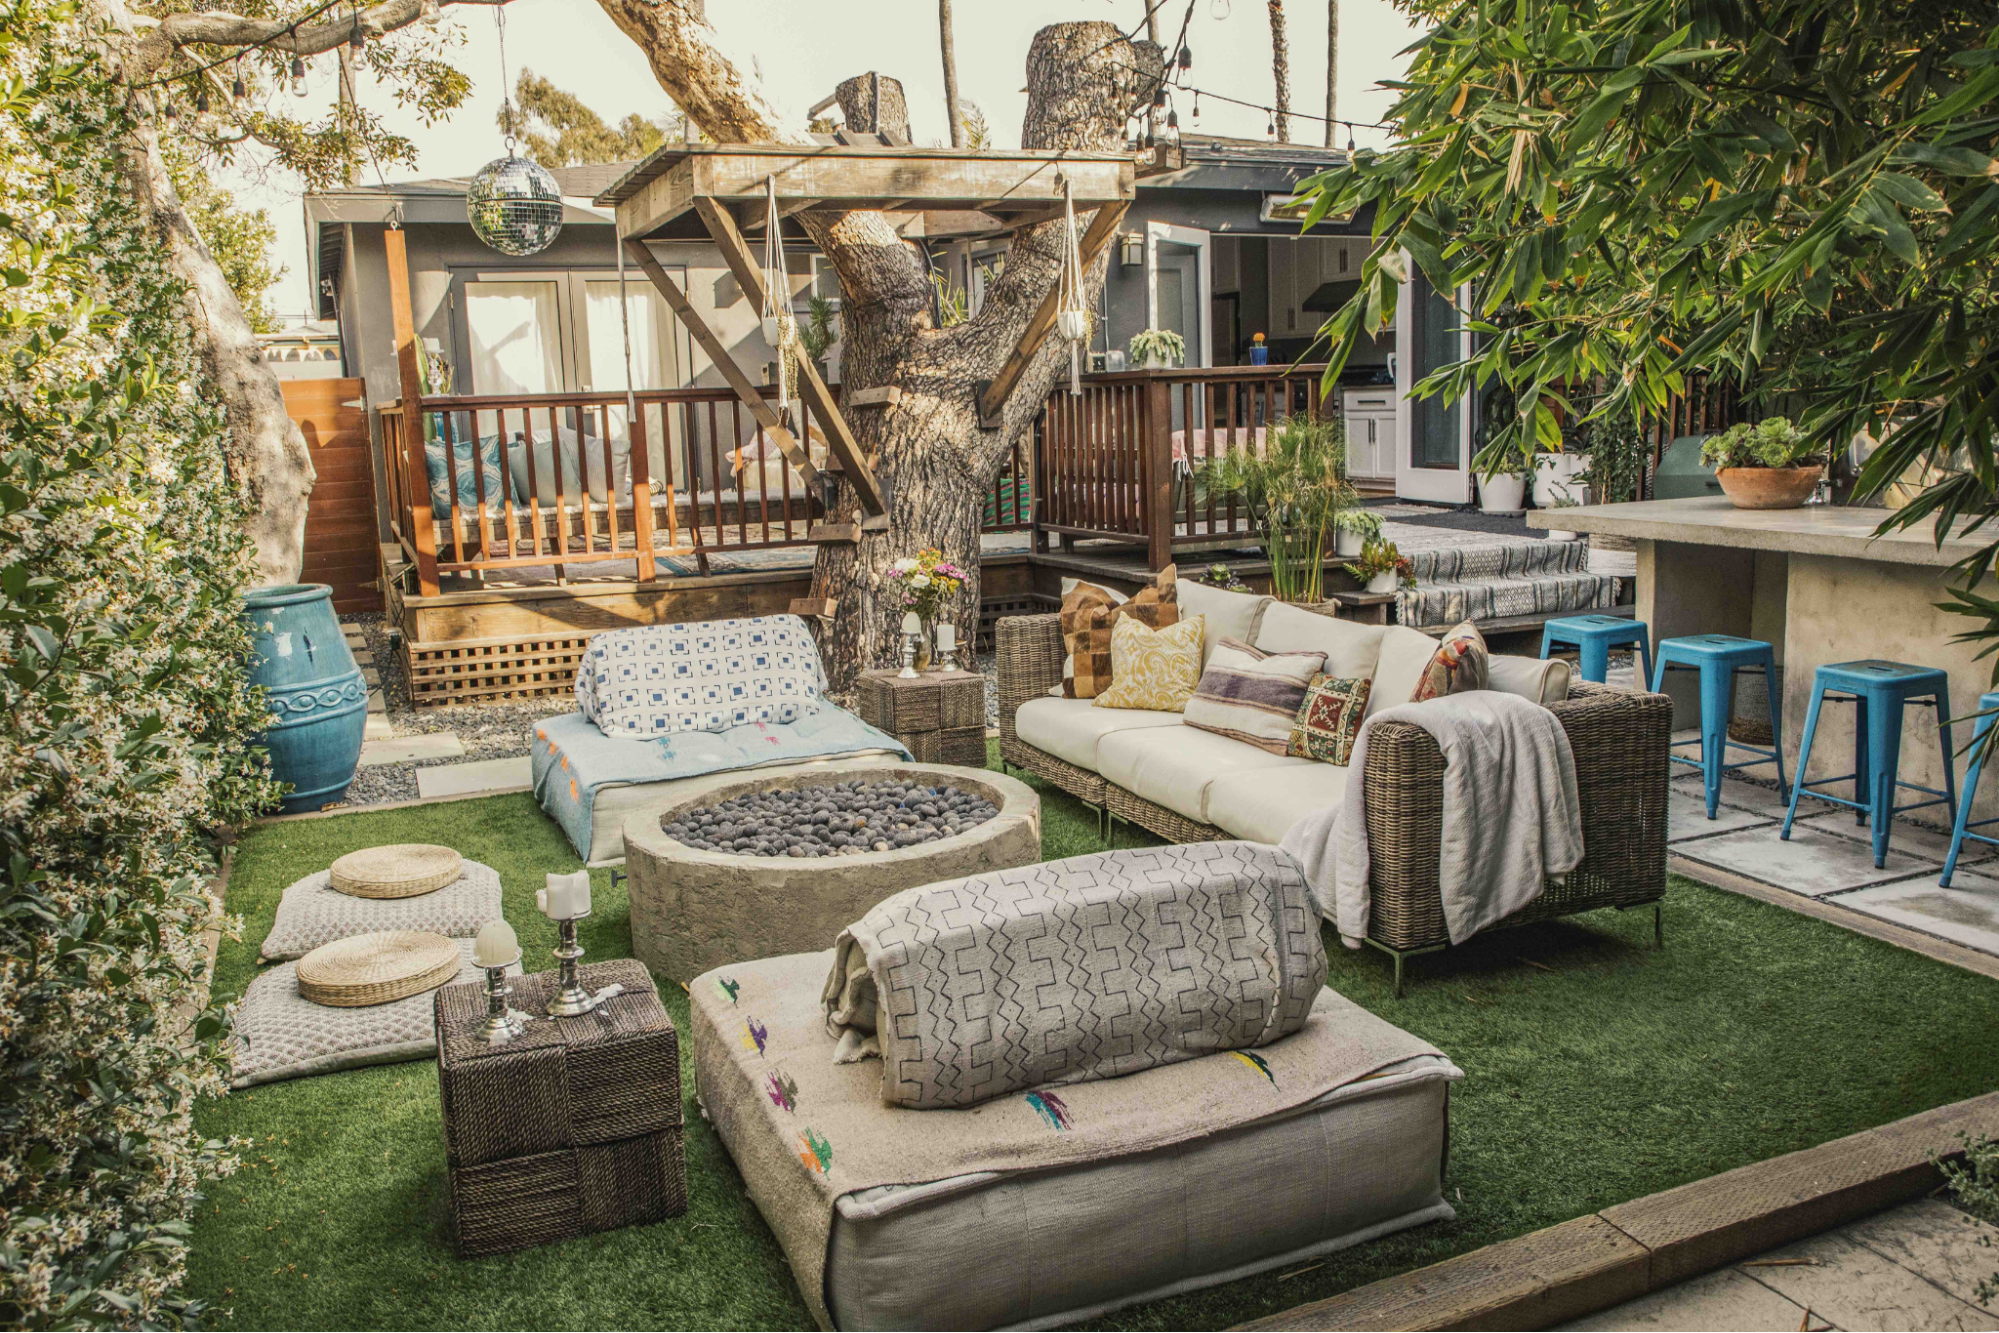 Boho-Chic outdoor living spaces